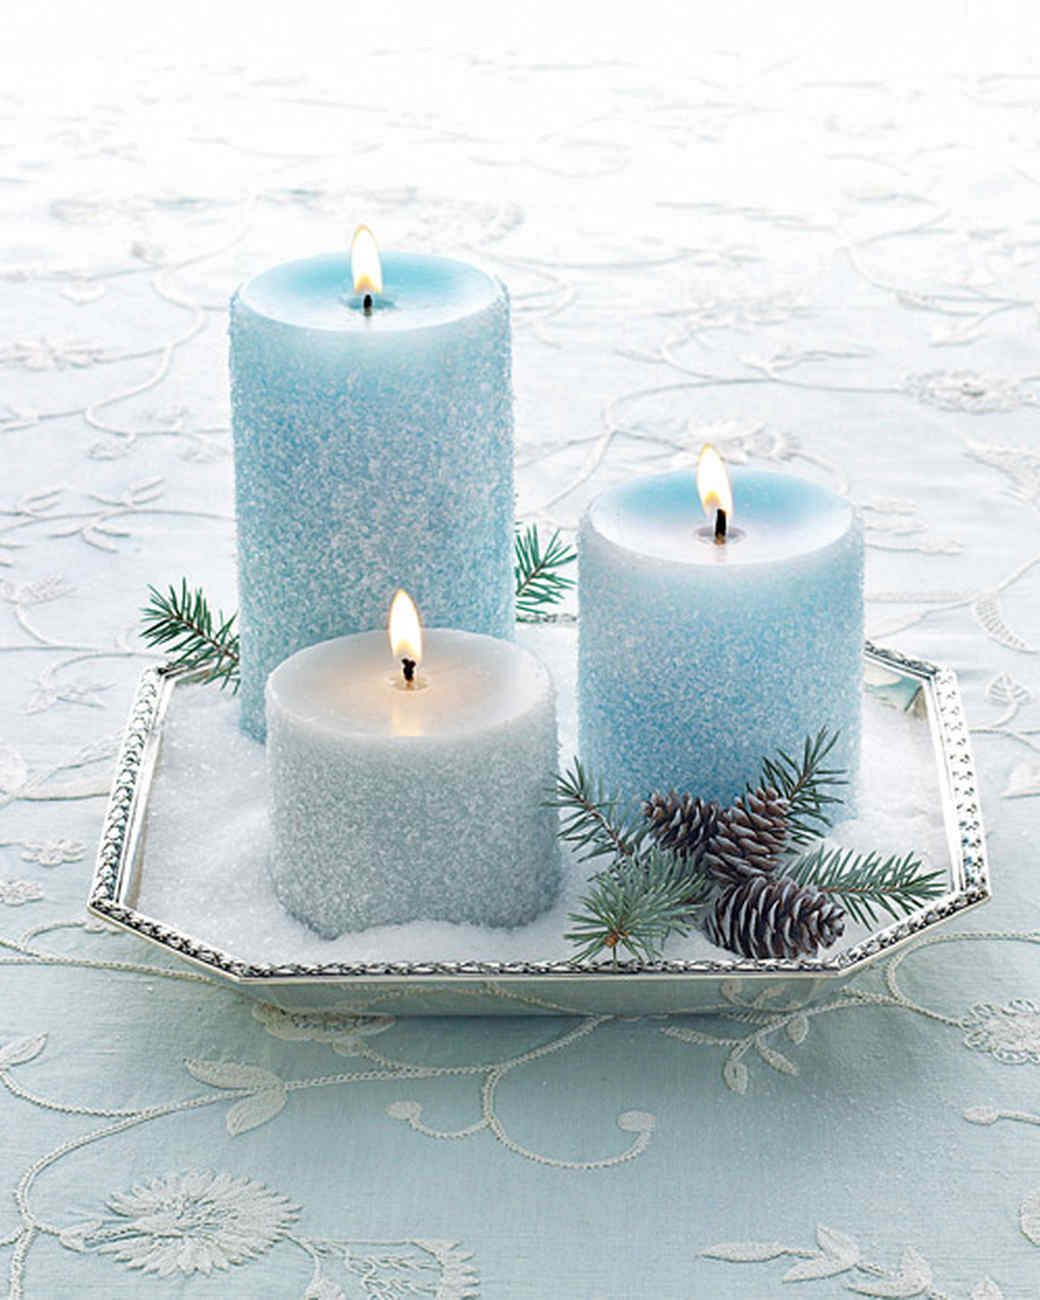 Christmas decoration with candles that spins - Christmas Stuff